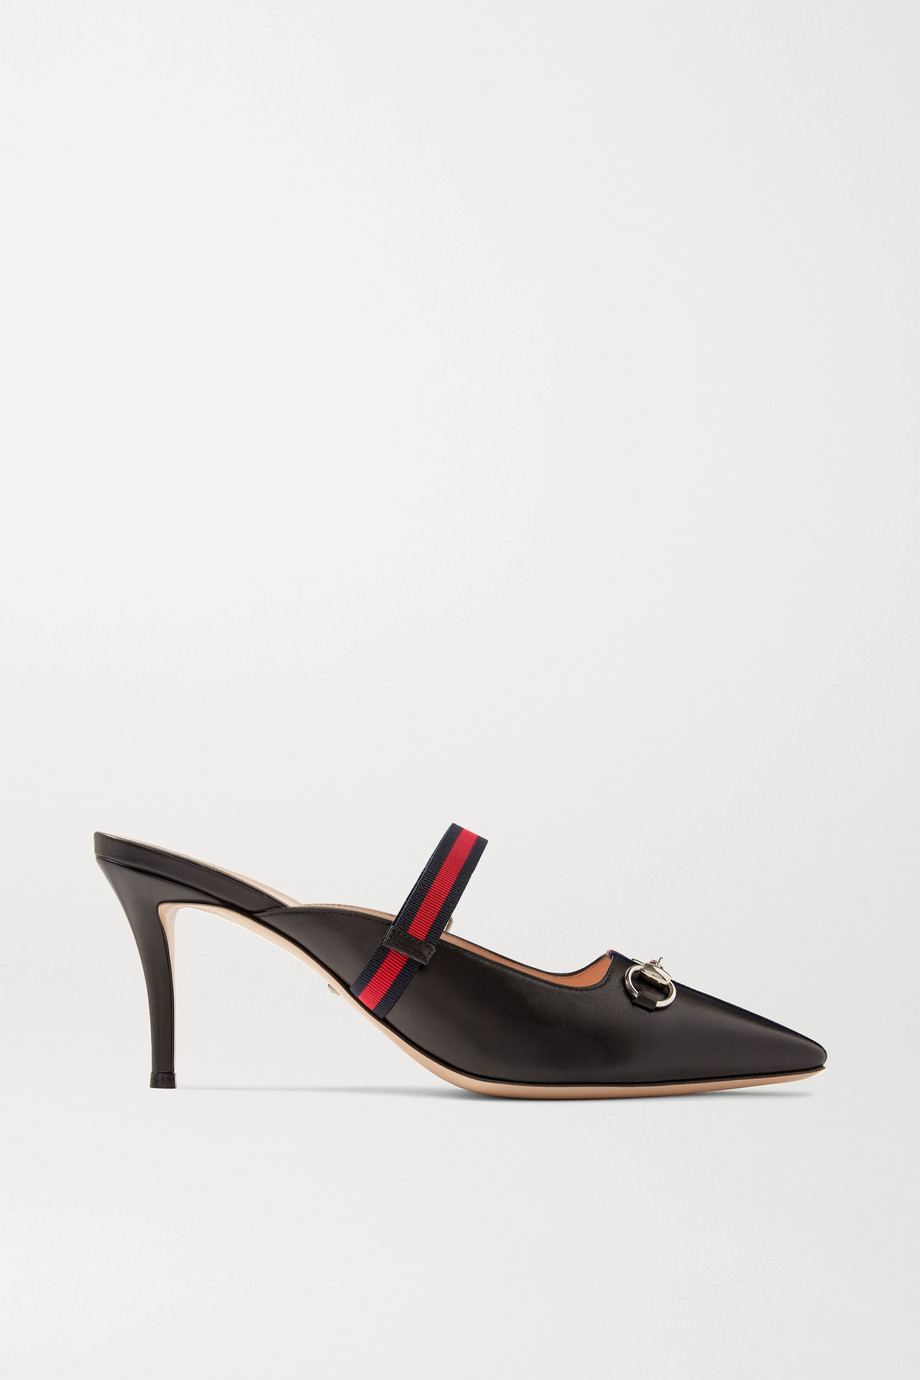 Gucci Horsebit-detailed grosgrain-trimmed leather mules